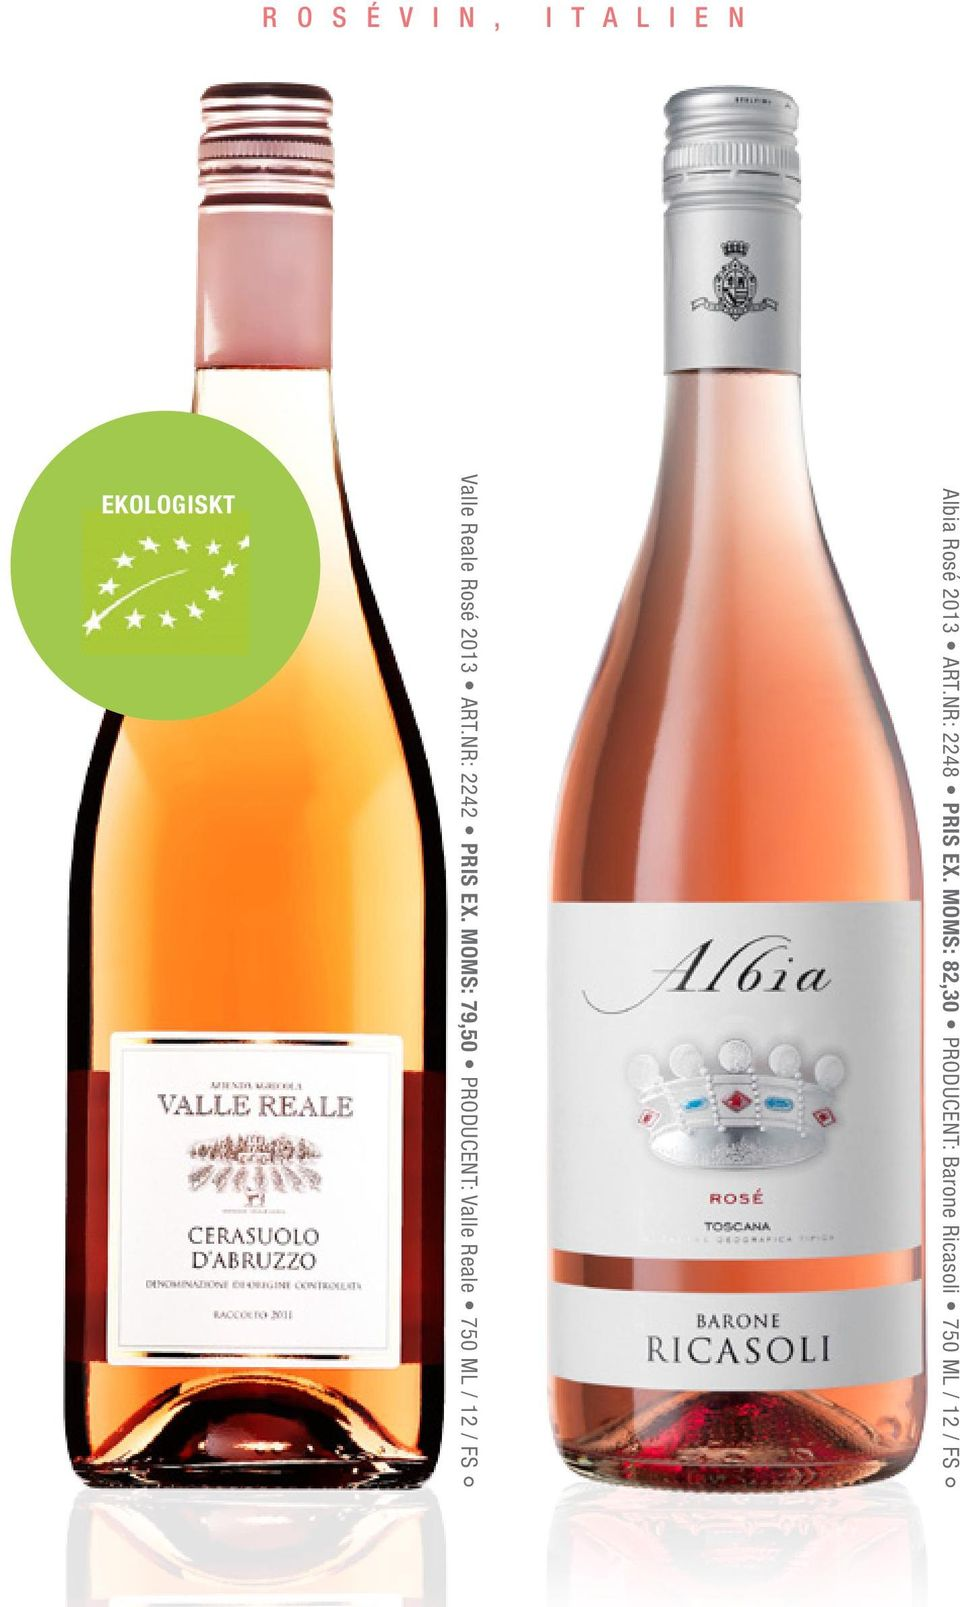 MOMS: 79,50 PRODUCENT: Valle Reale 750 ML / 12 / FS Albia